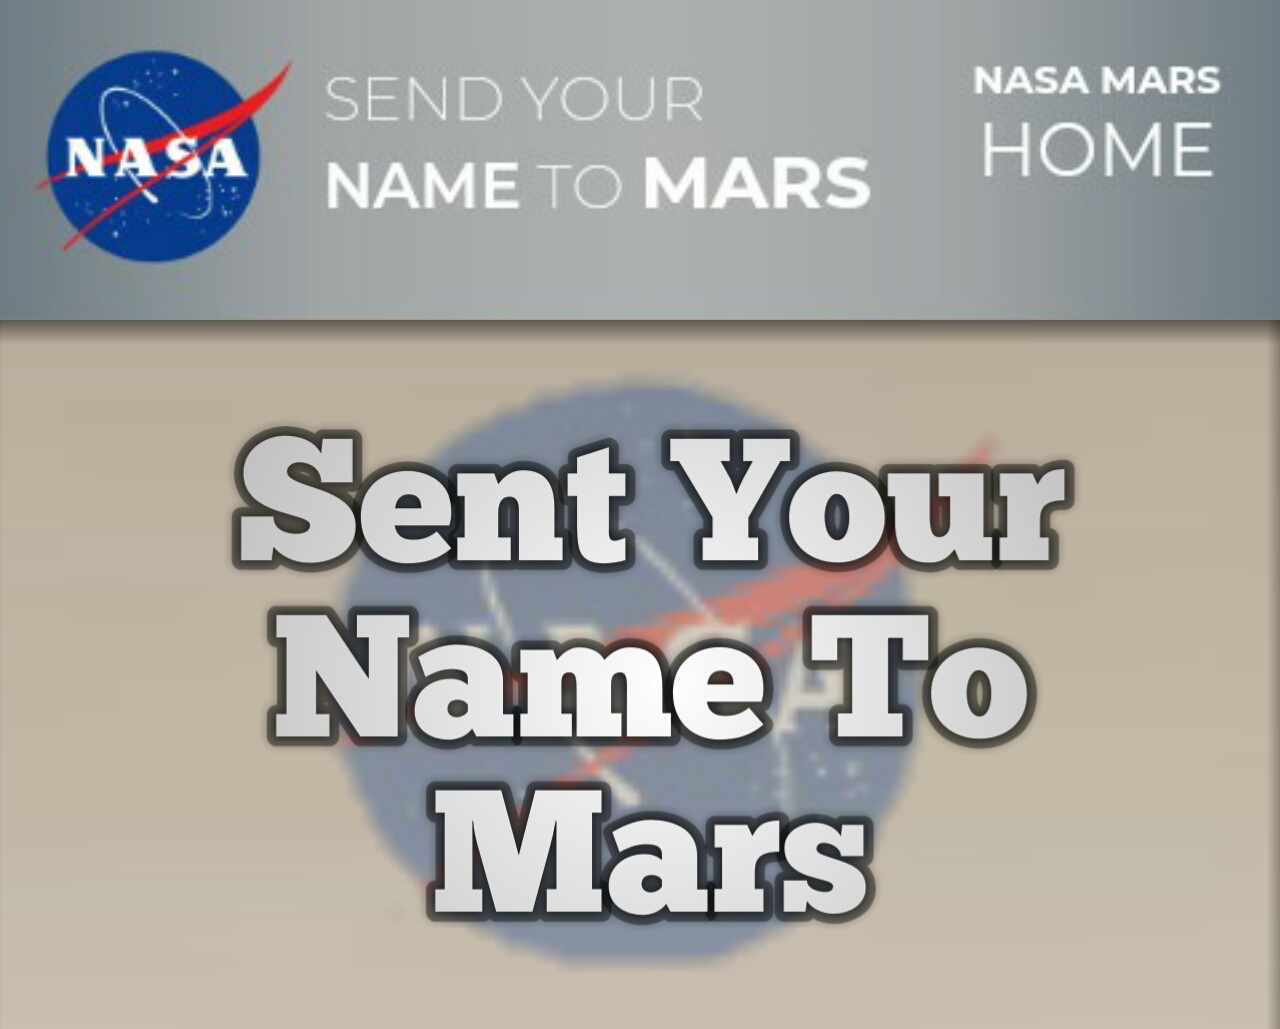 How to you sent your name to Mars